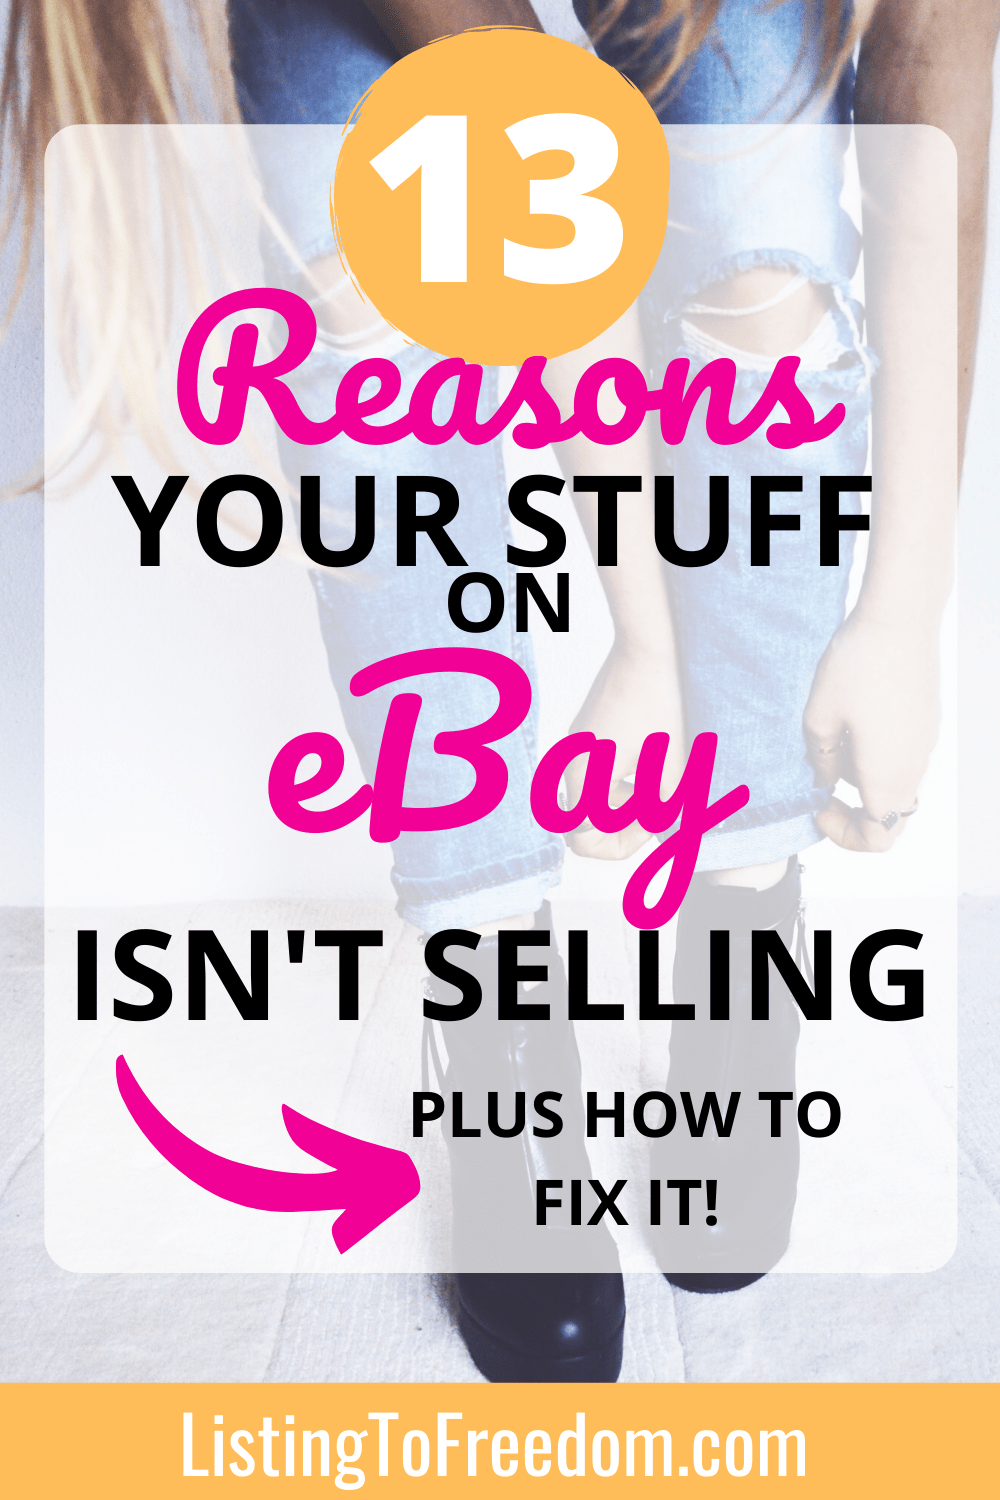 Why Is My Stuff On eBay Not Selling? 13 Reasons And How To Fix It